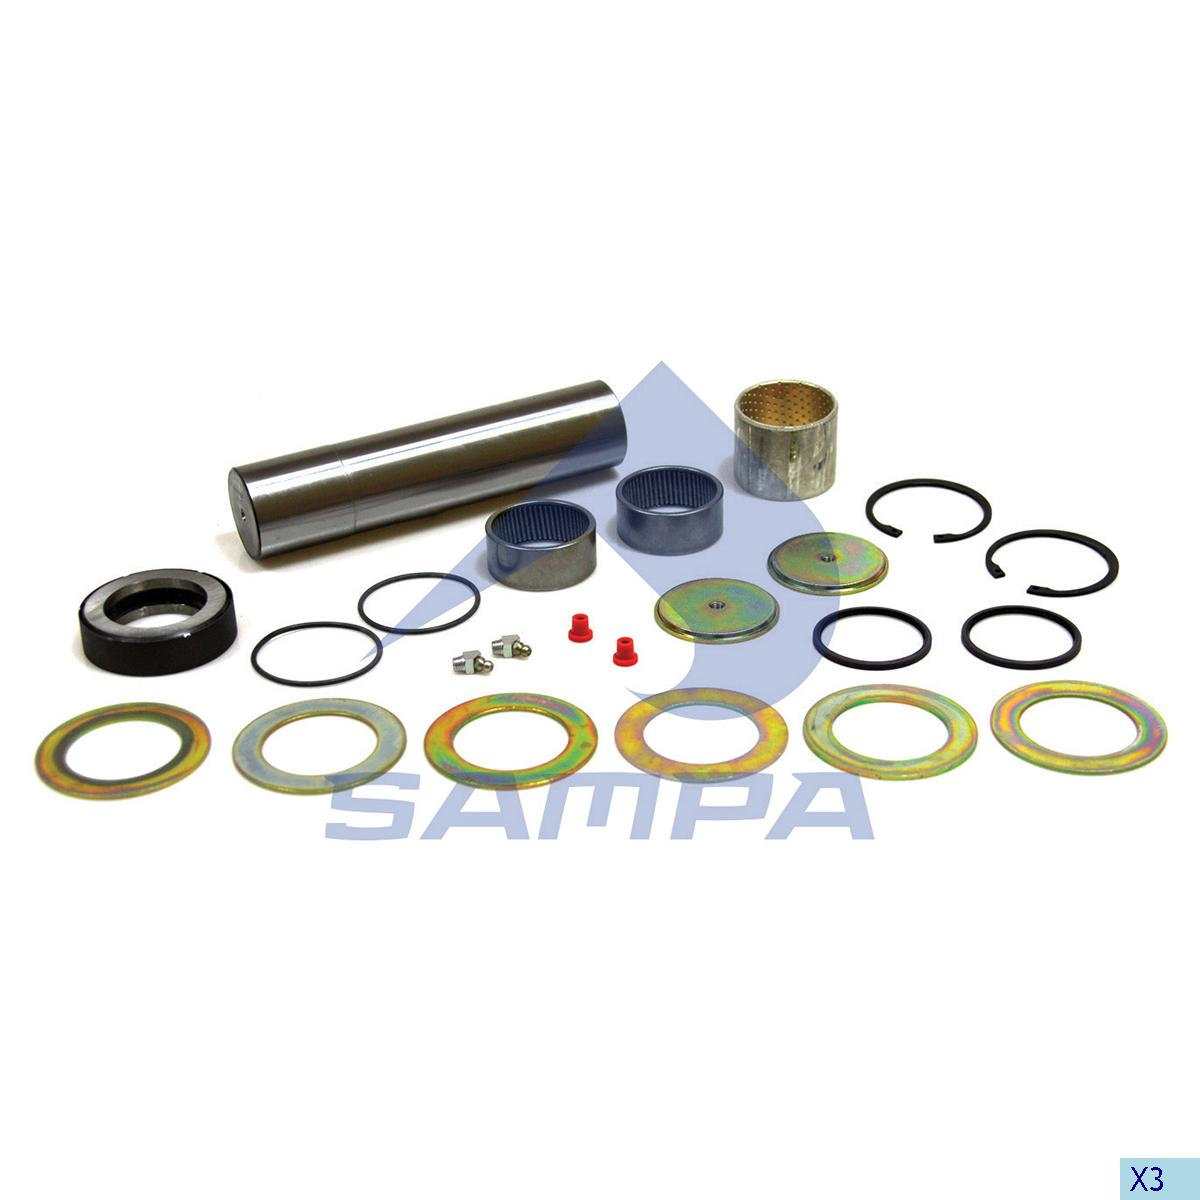 King Pin Kit, Axle Steering Knuckle, Man, Power Unit